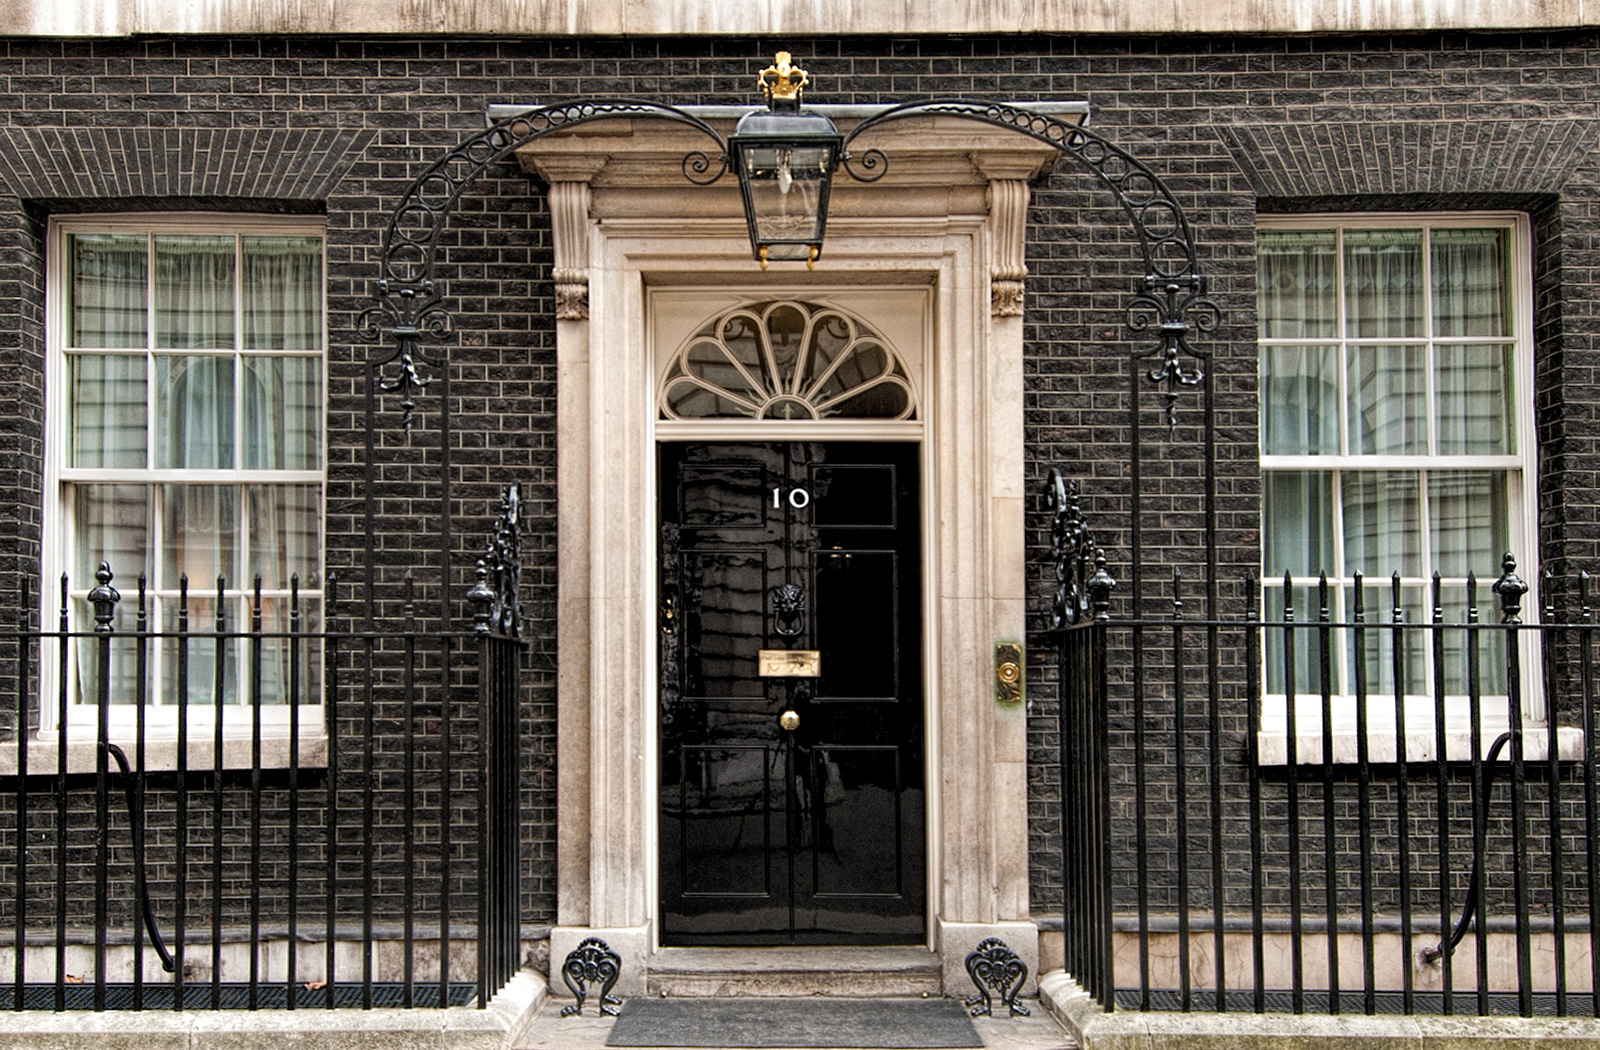 10 downing street virtual tour eyerevolution. Black Bedroom Furniture Sets. Home Design Ideas